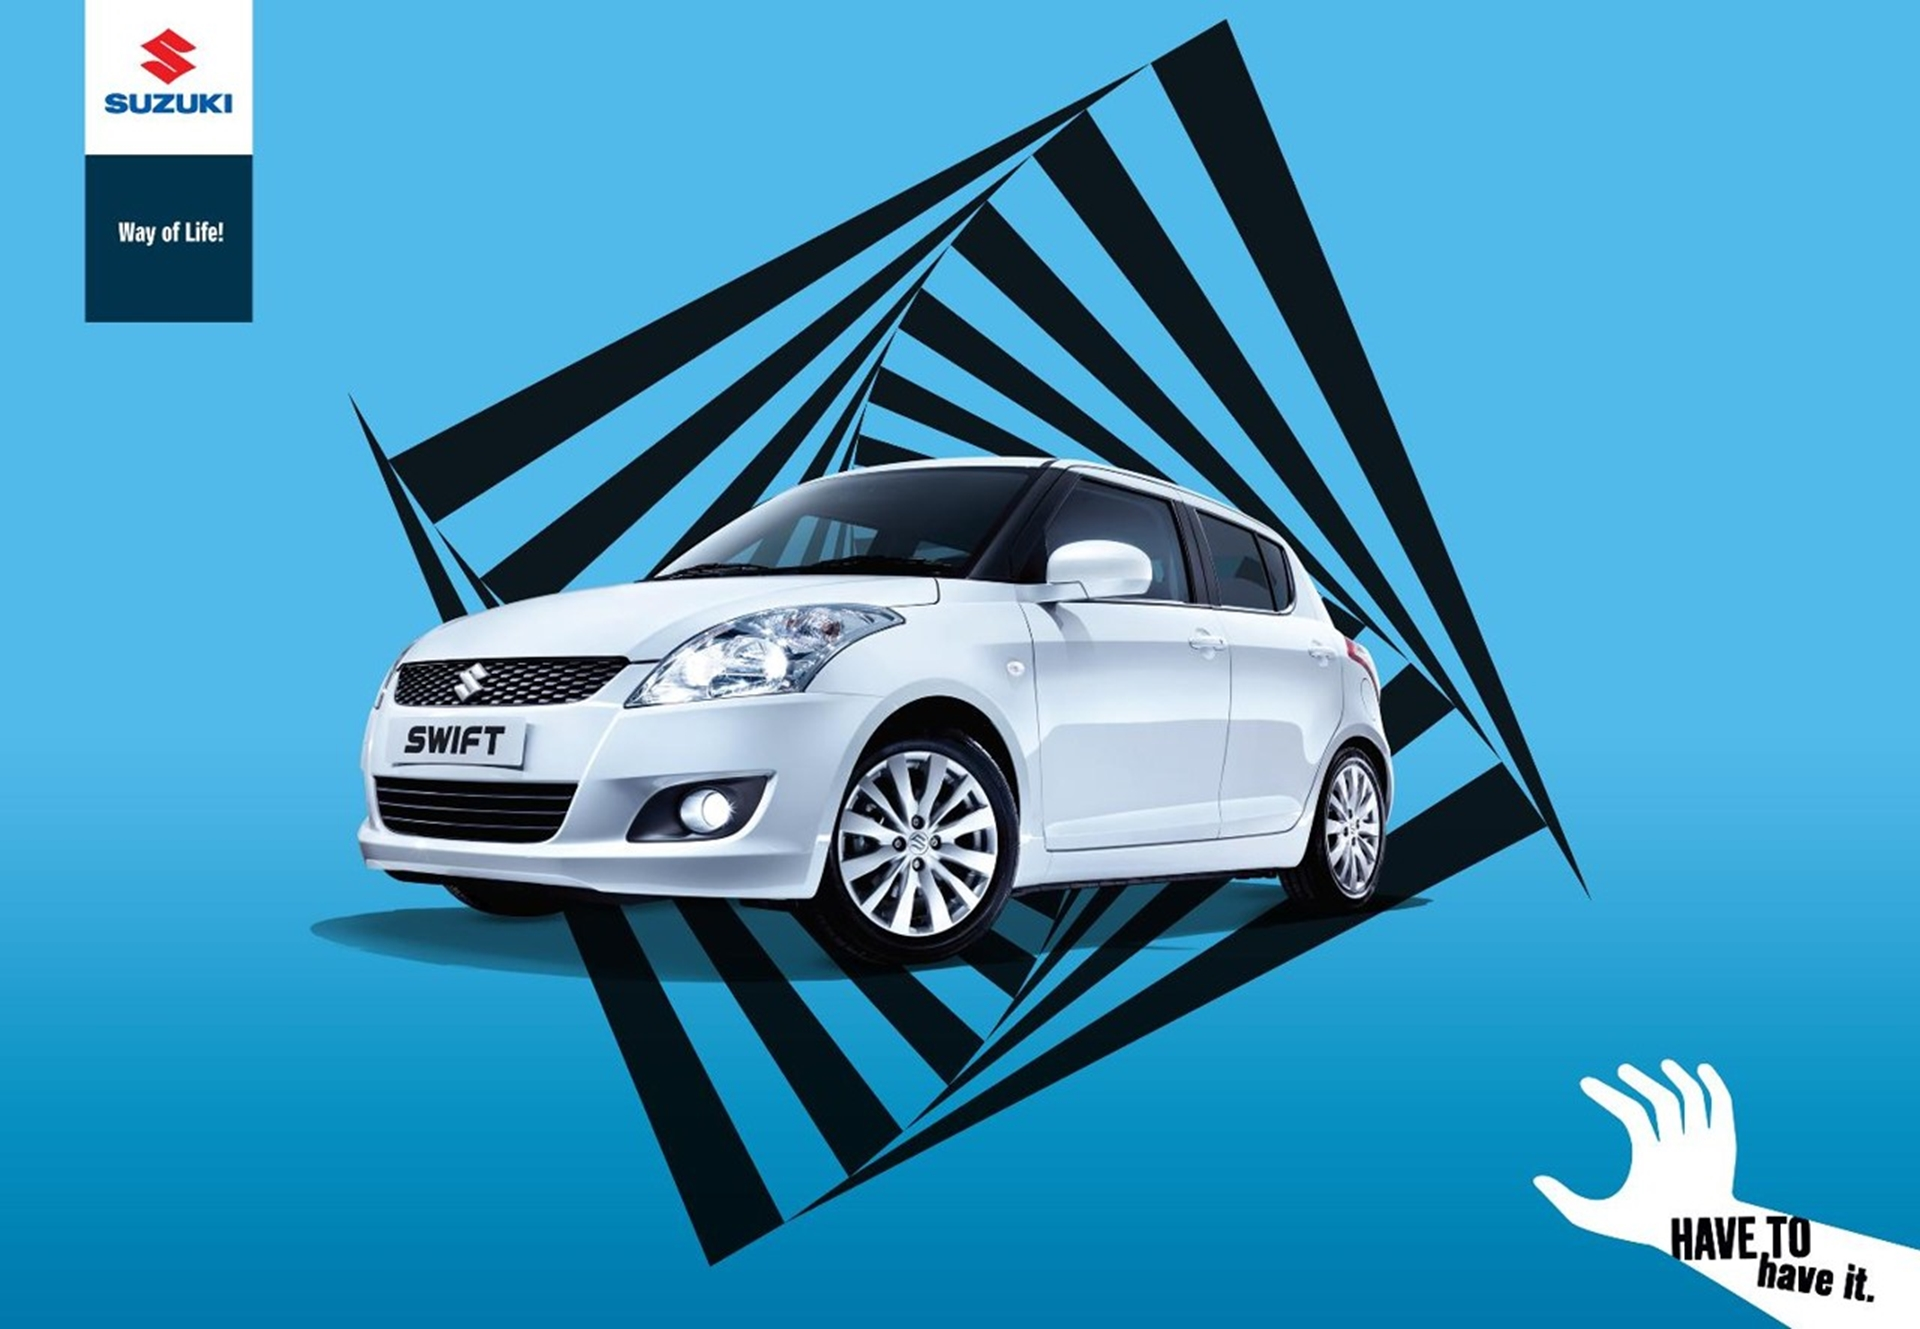 suzuki swift have to have it